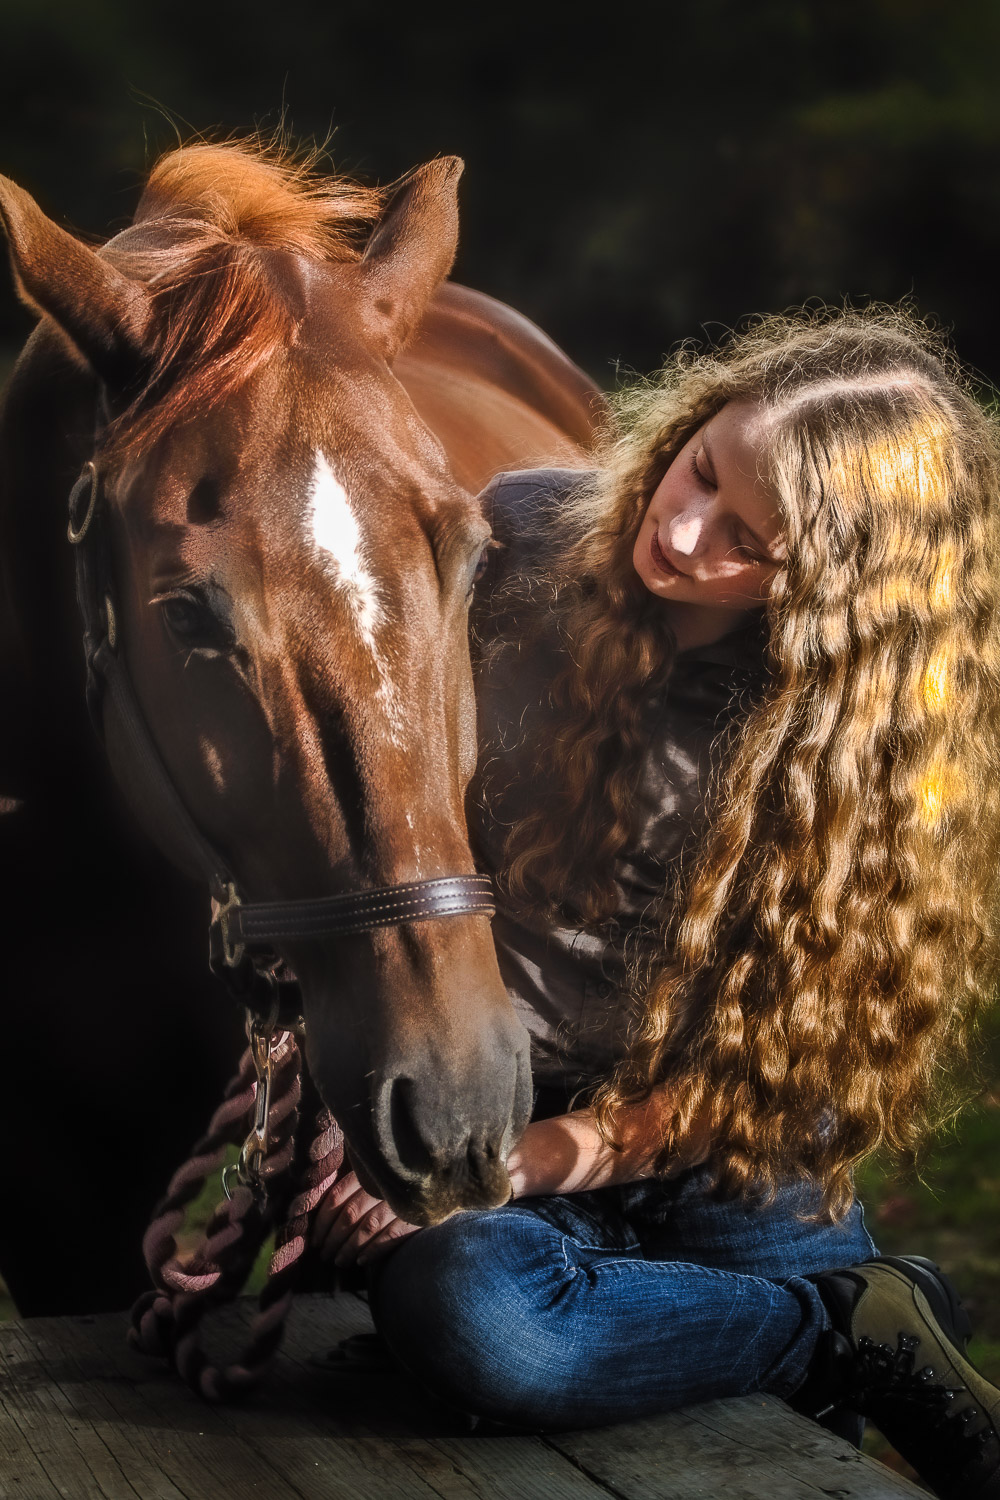 Senior-Portrait-Girl-With-Long-Hair-With-Horse.jpg